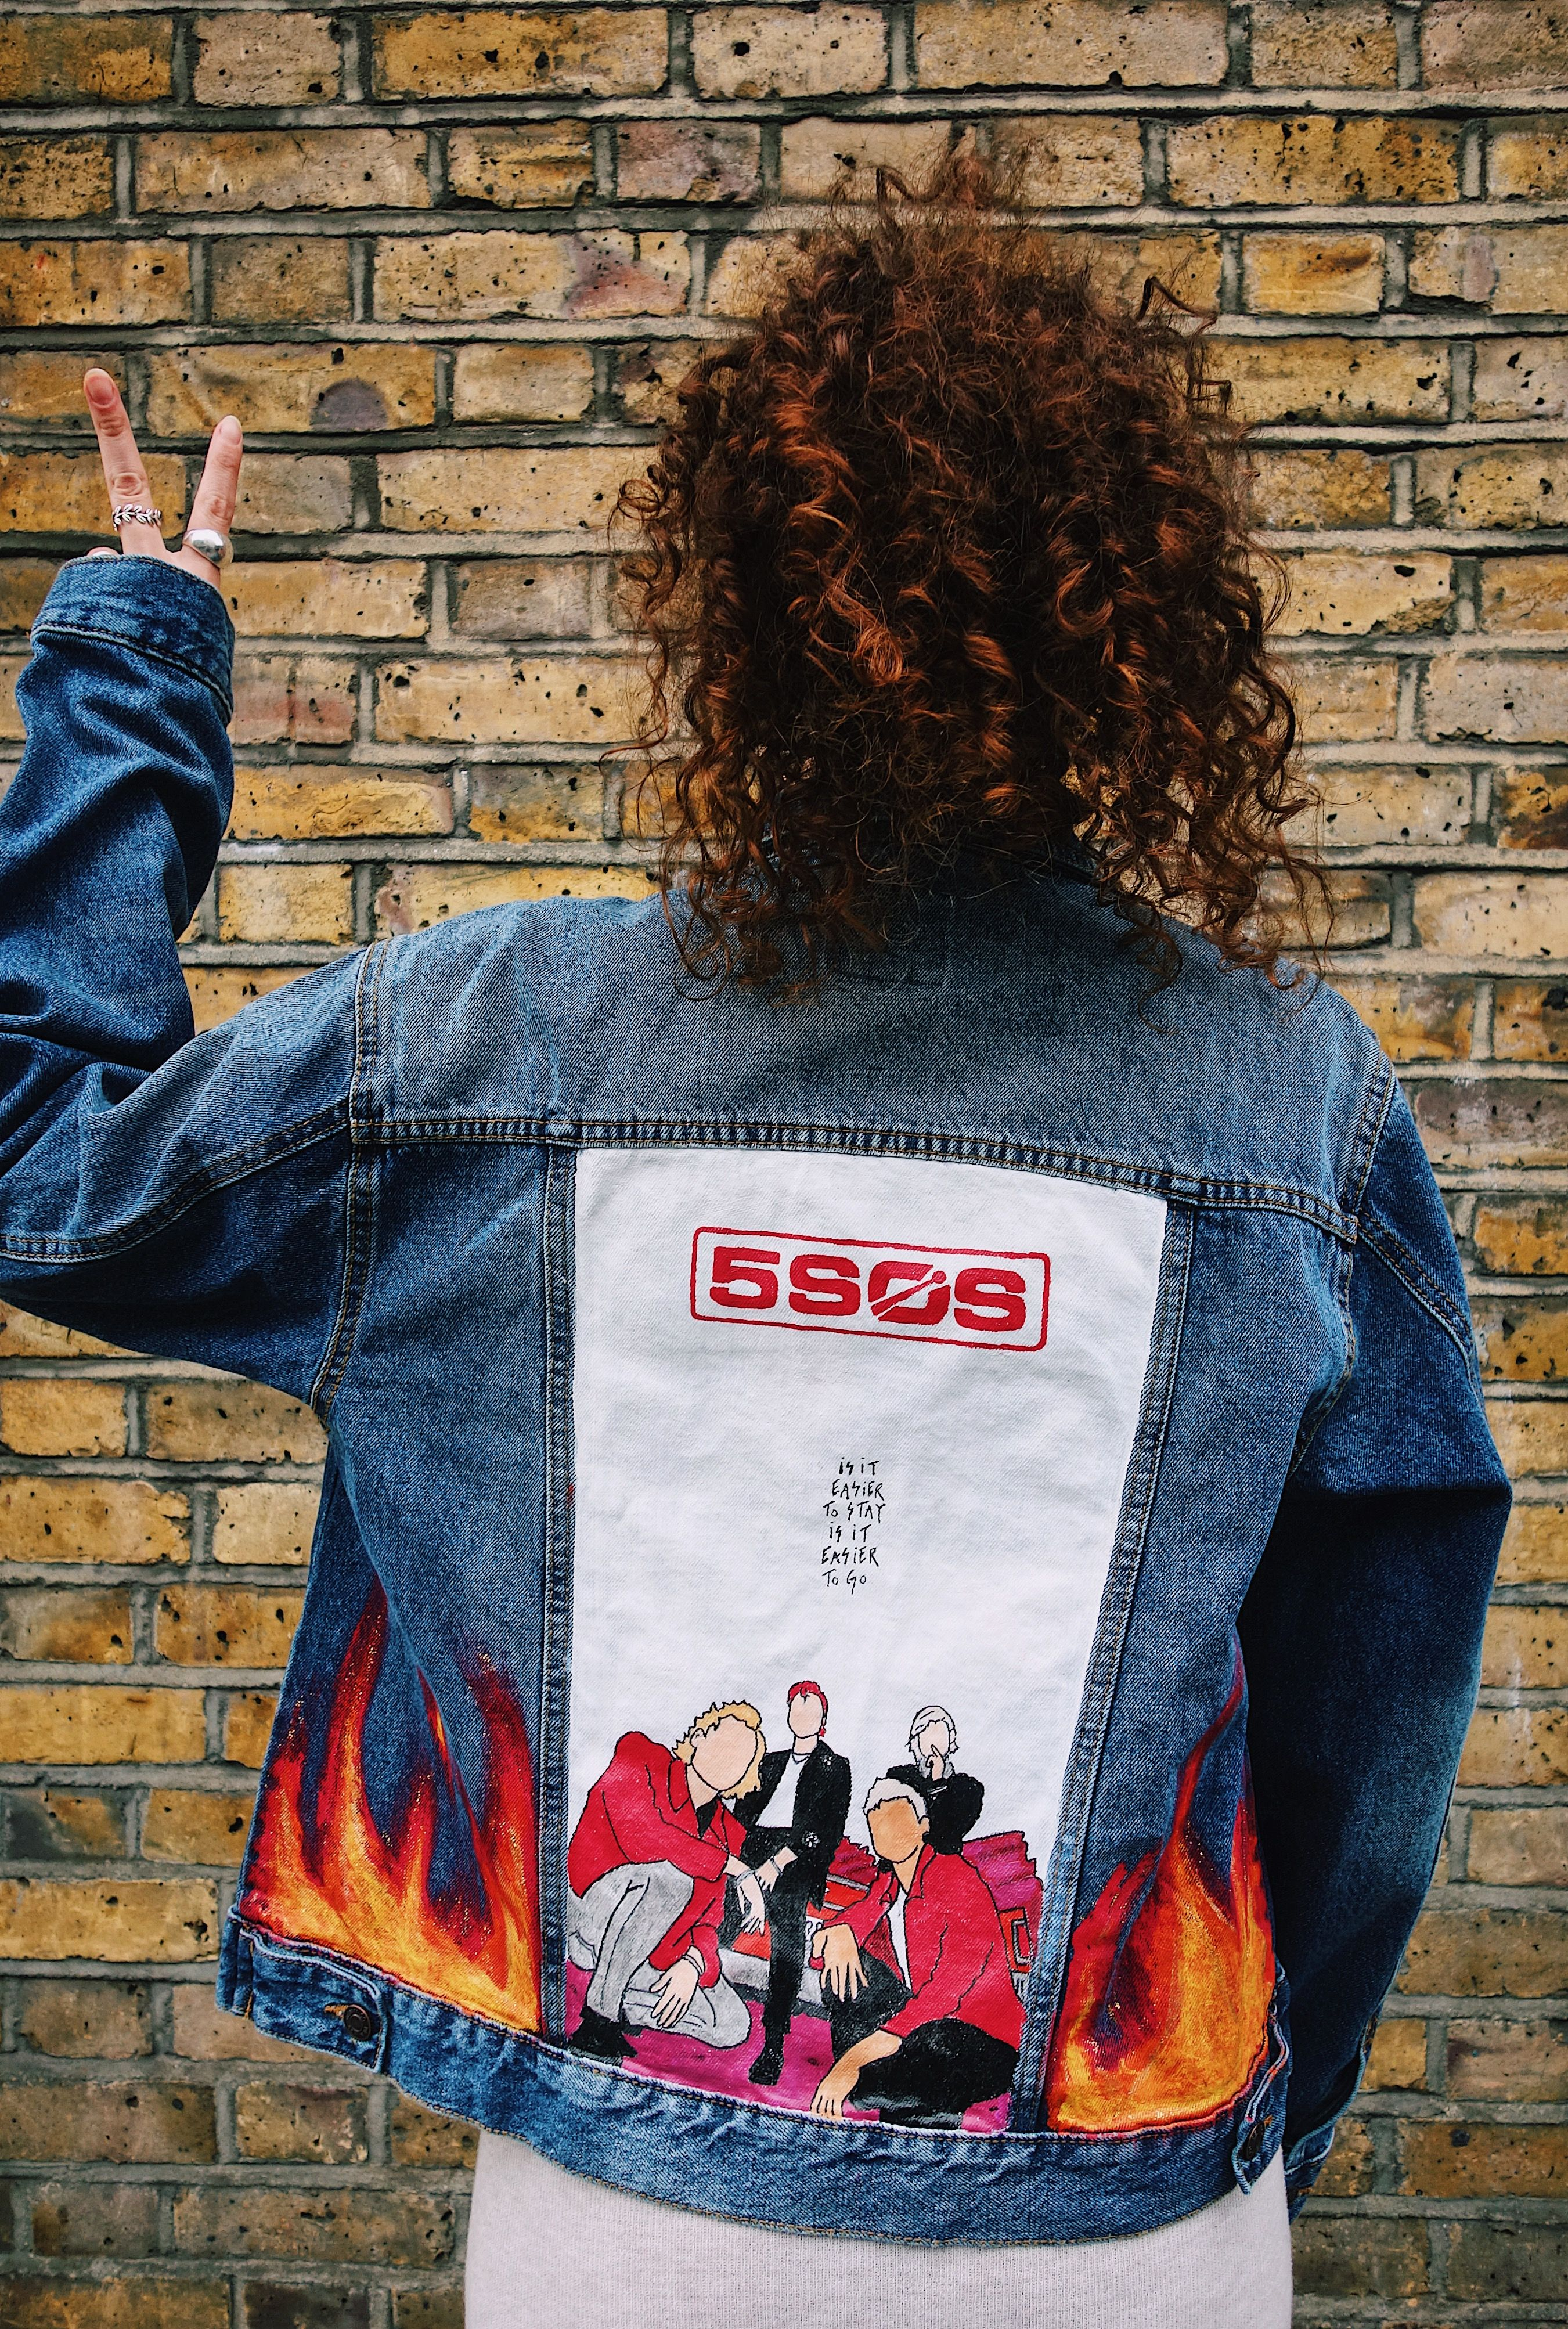 Pin By Ivana Castillo On 5 Seconds Of Summer In 2020 5sos